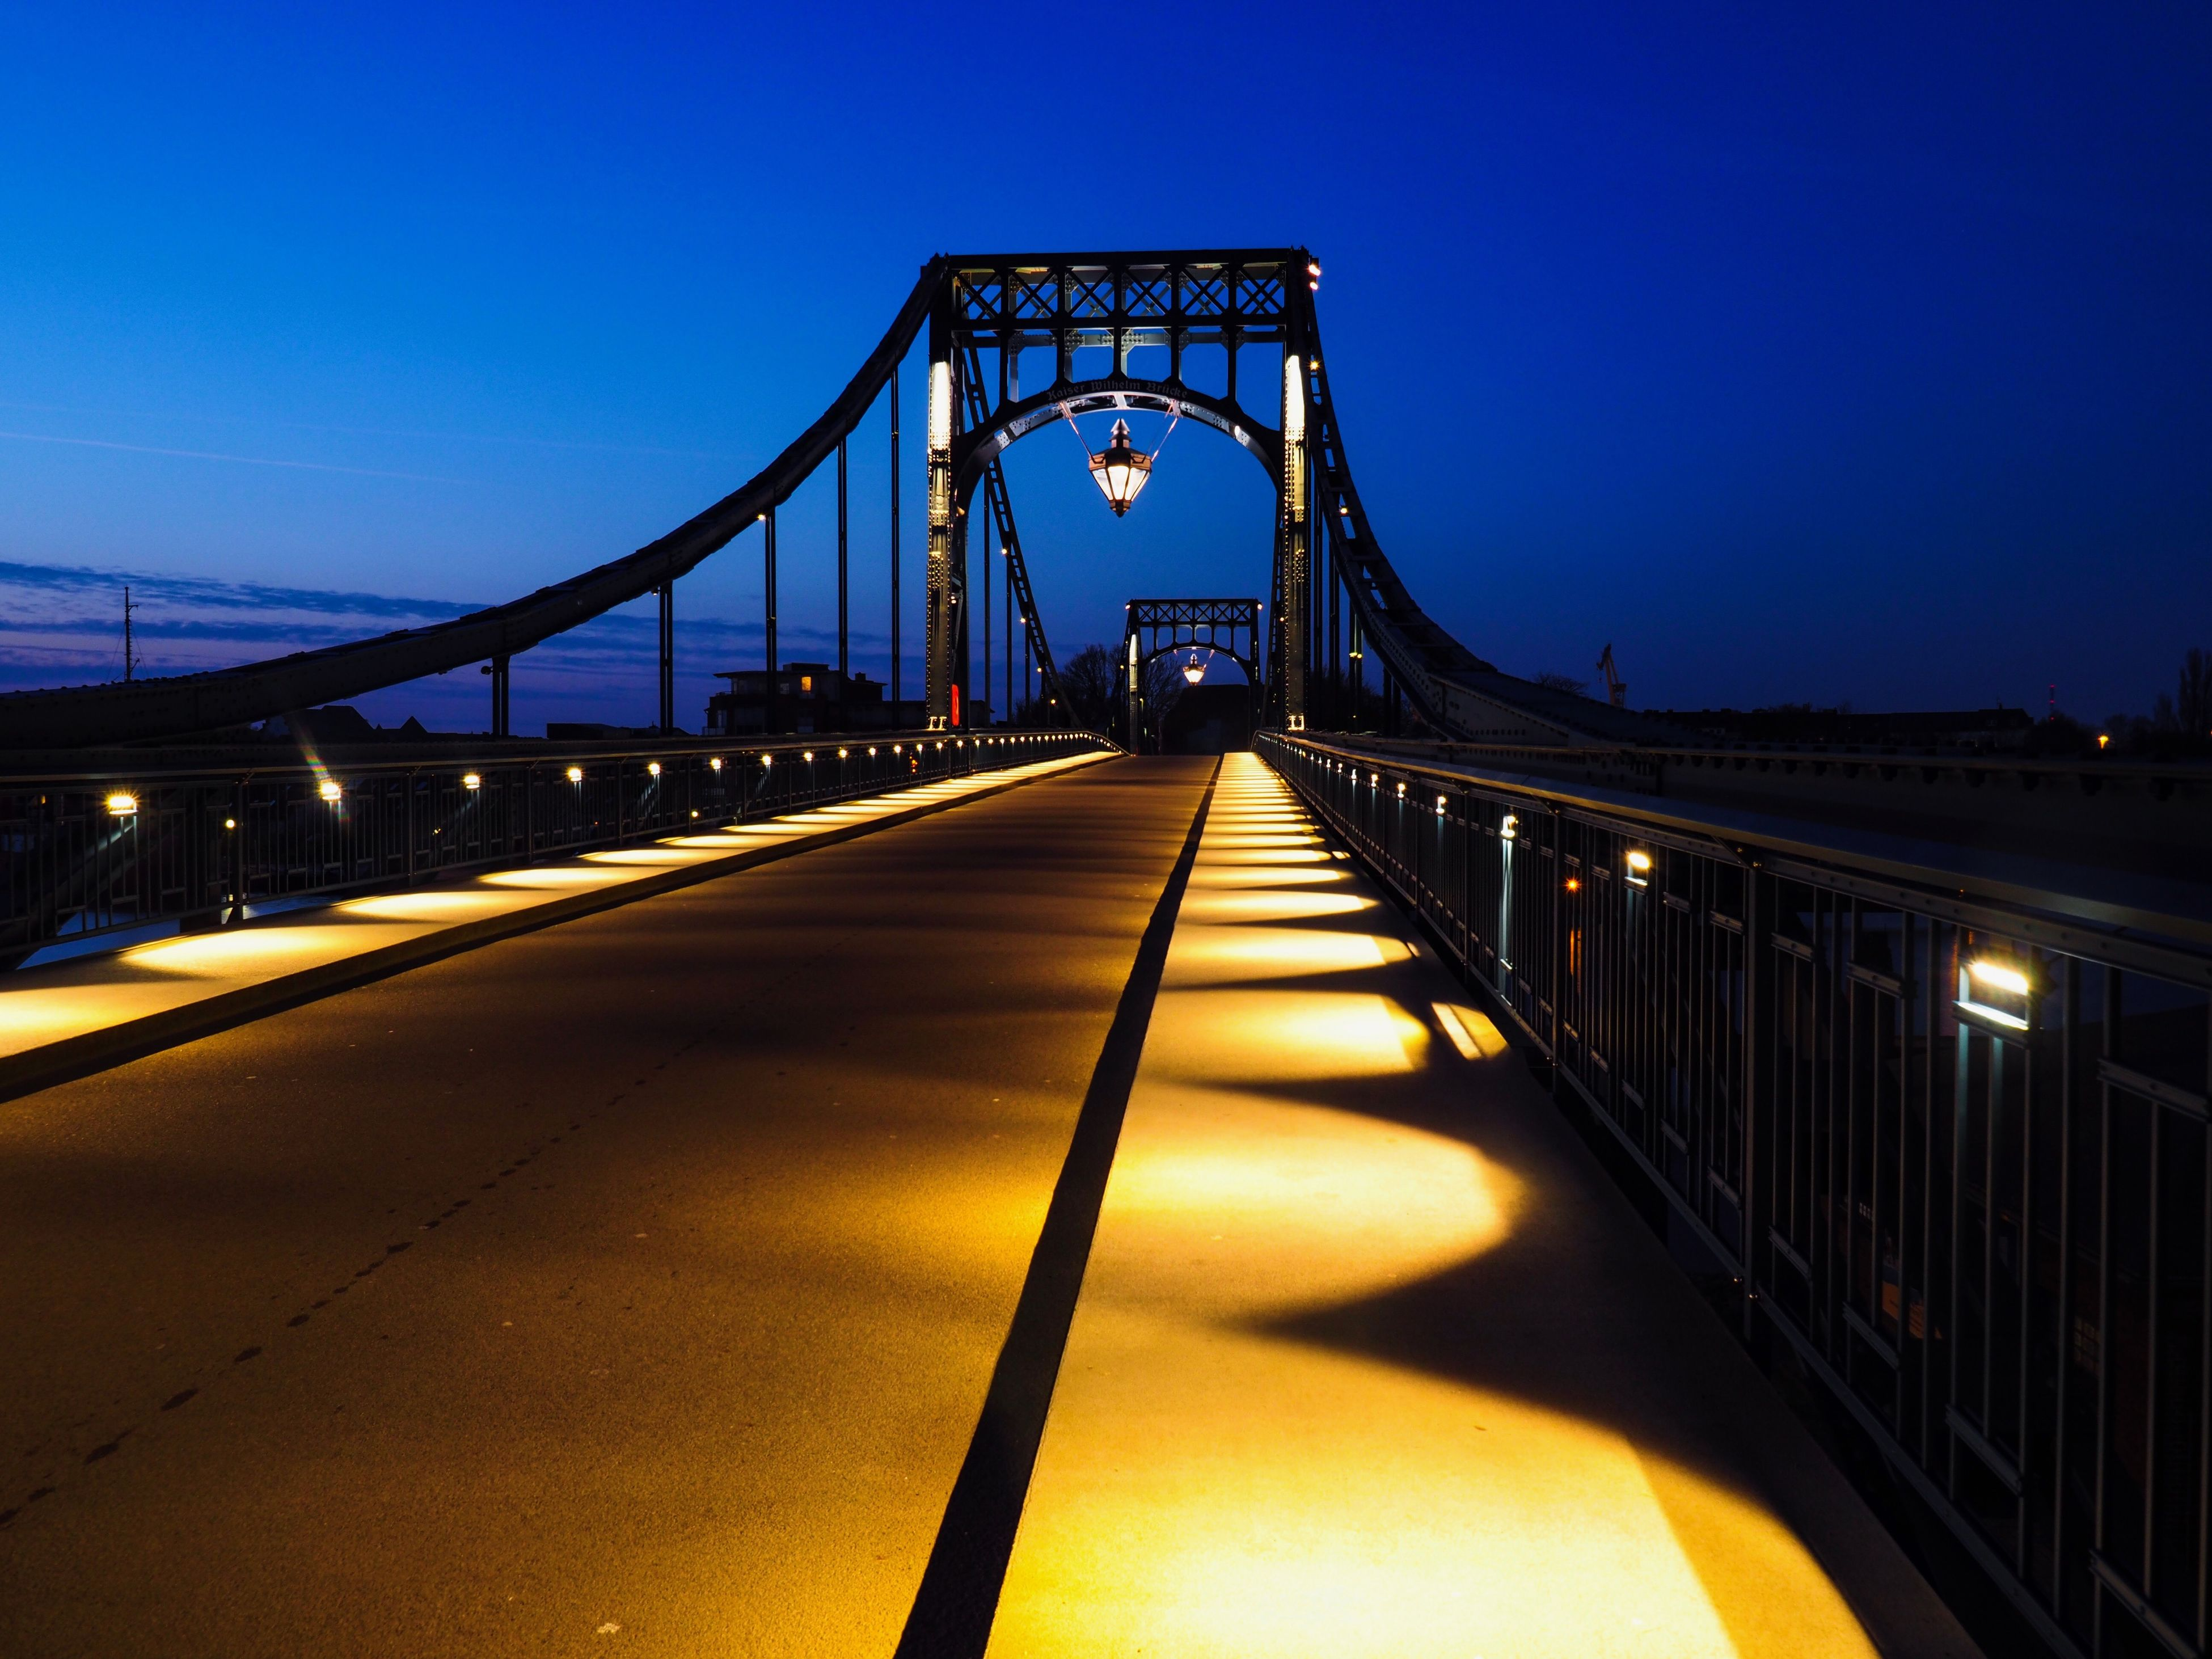 bridge - man made structure, built structure, architecture, sky, transportation, connection, the way forward, travel destinations, no people, suspension bridge, city, illuminated, outdoors, night